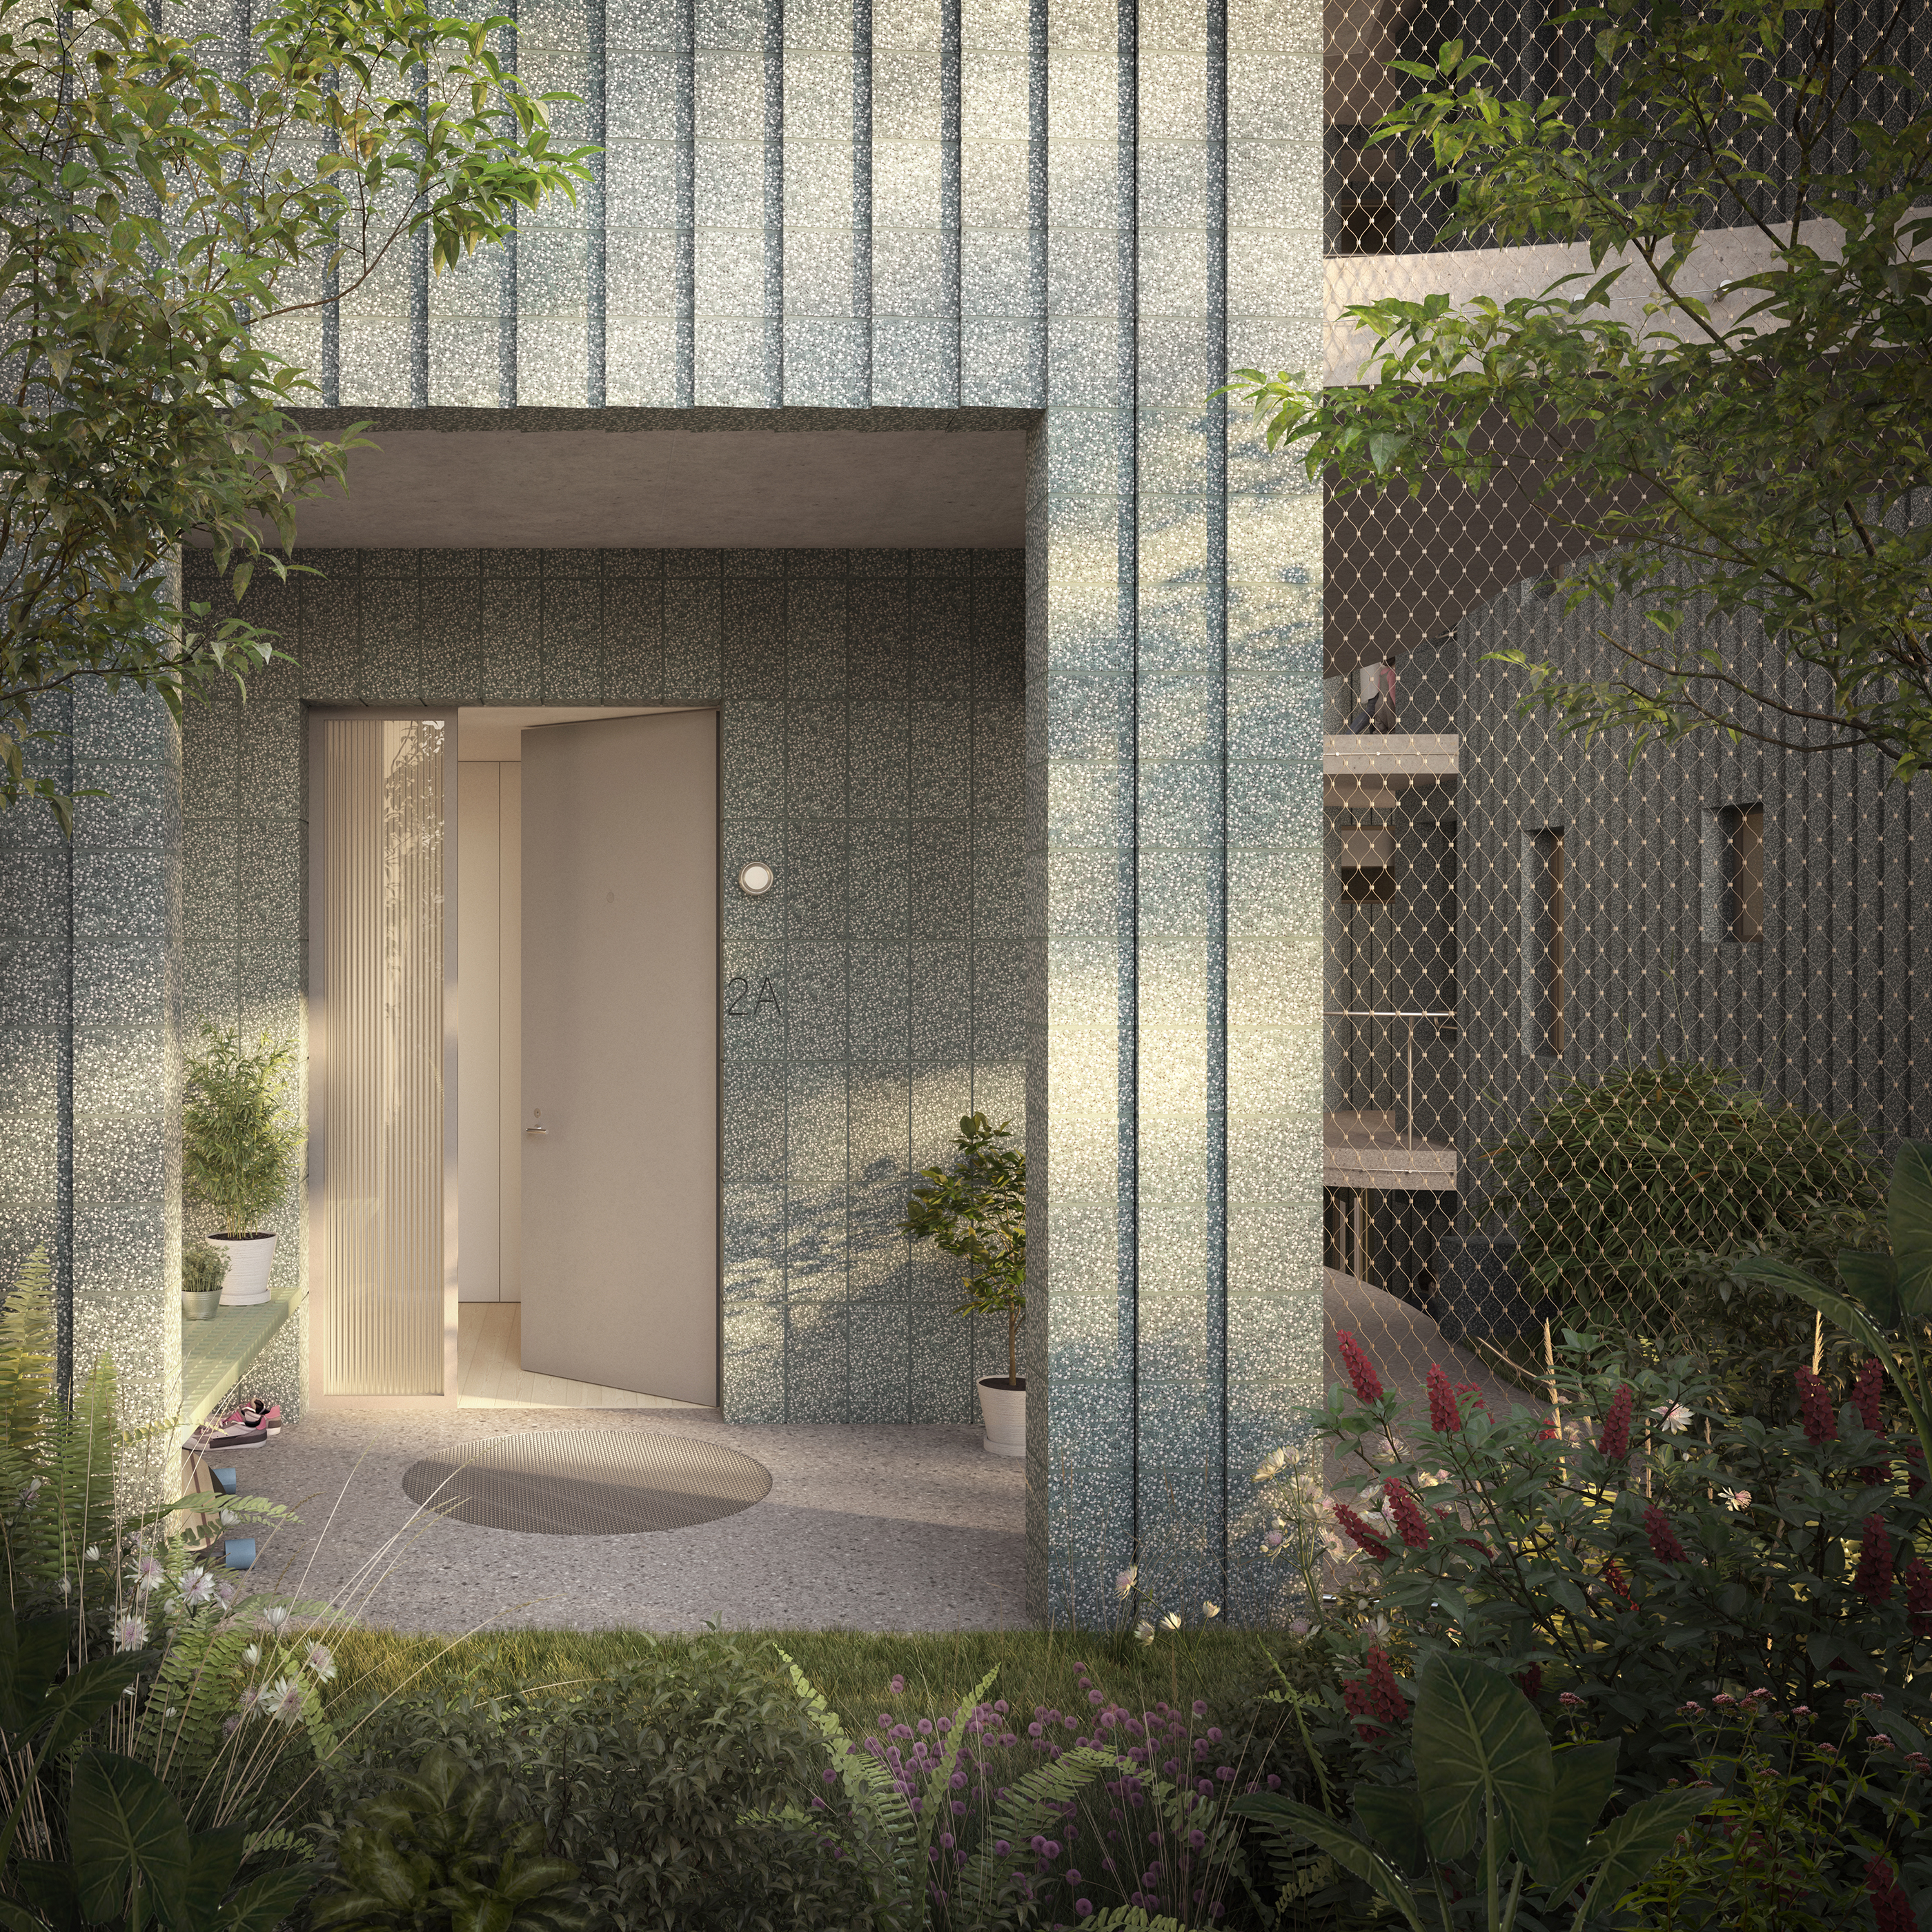 rendering of an entrance to a new concrete apartment building